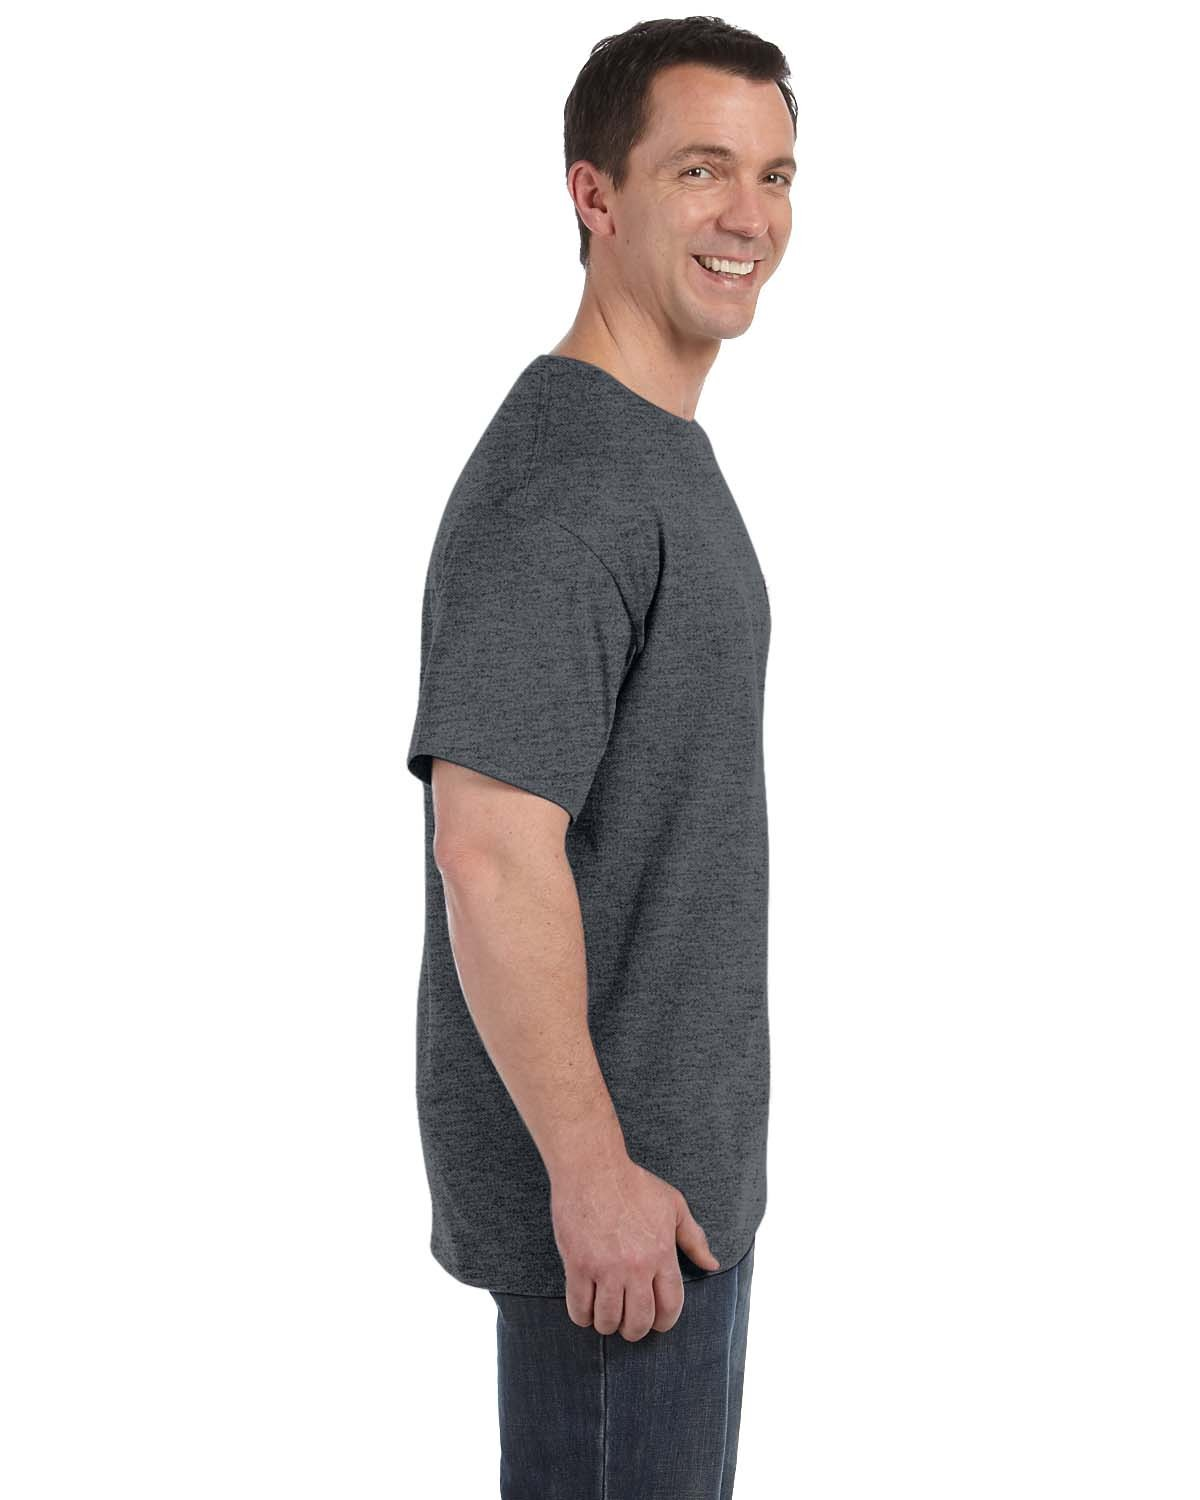 H5590 Hanes CHARCOAL HEATHER